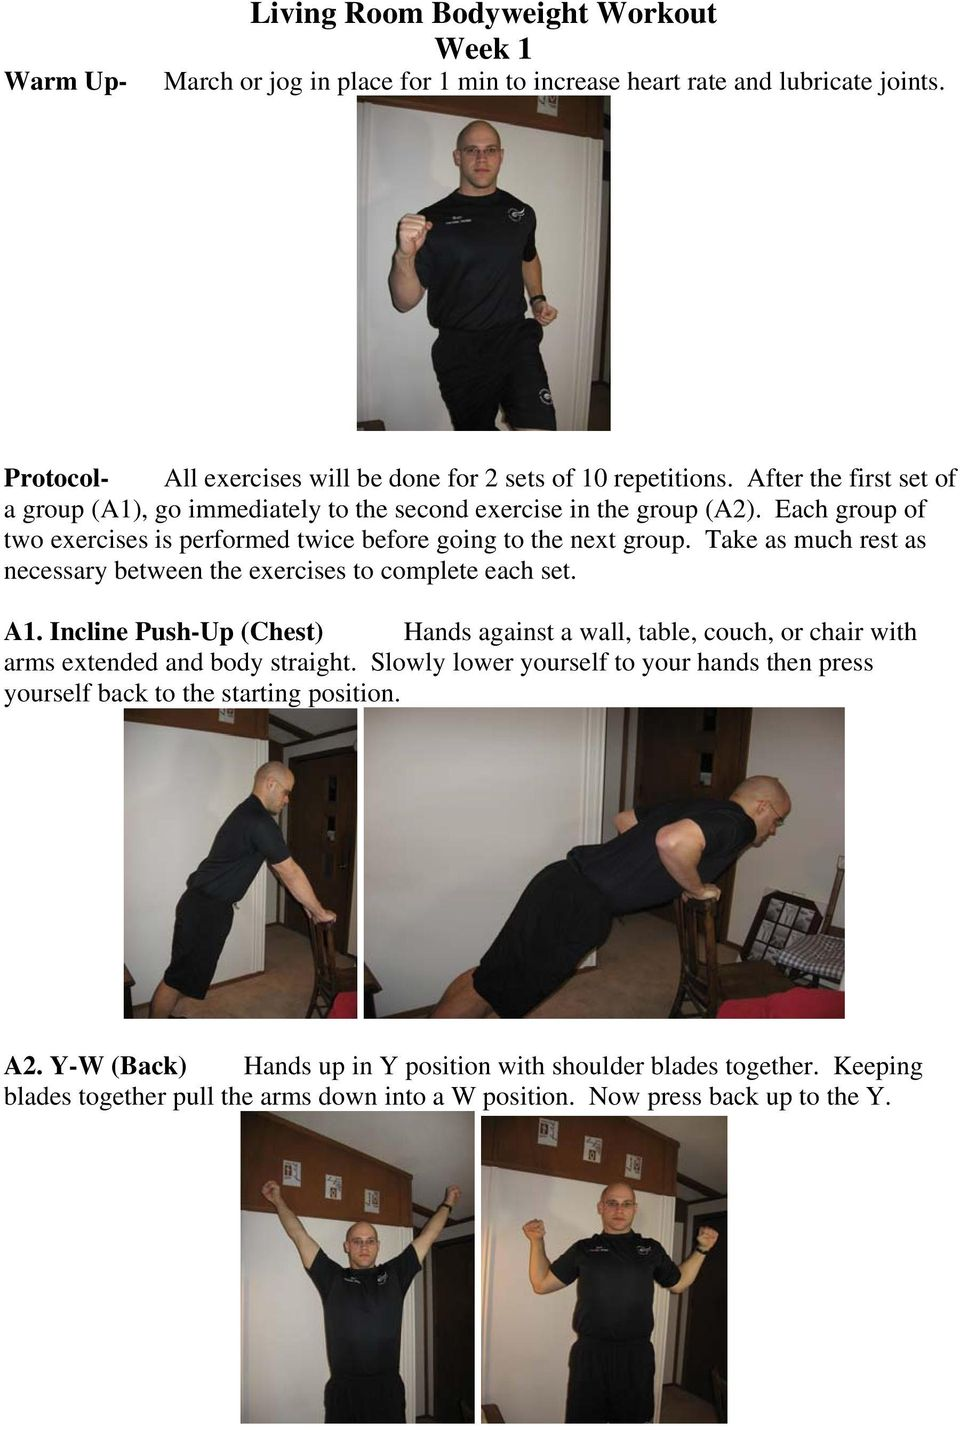 Take as much rest as necessary between the exercises to complete each set. A1. Incline Push-Up (Chest) Hands against a wall, table, couch, or chair with arms extended and body straight.